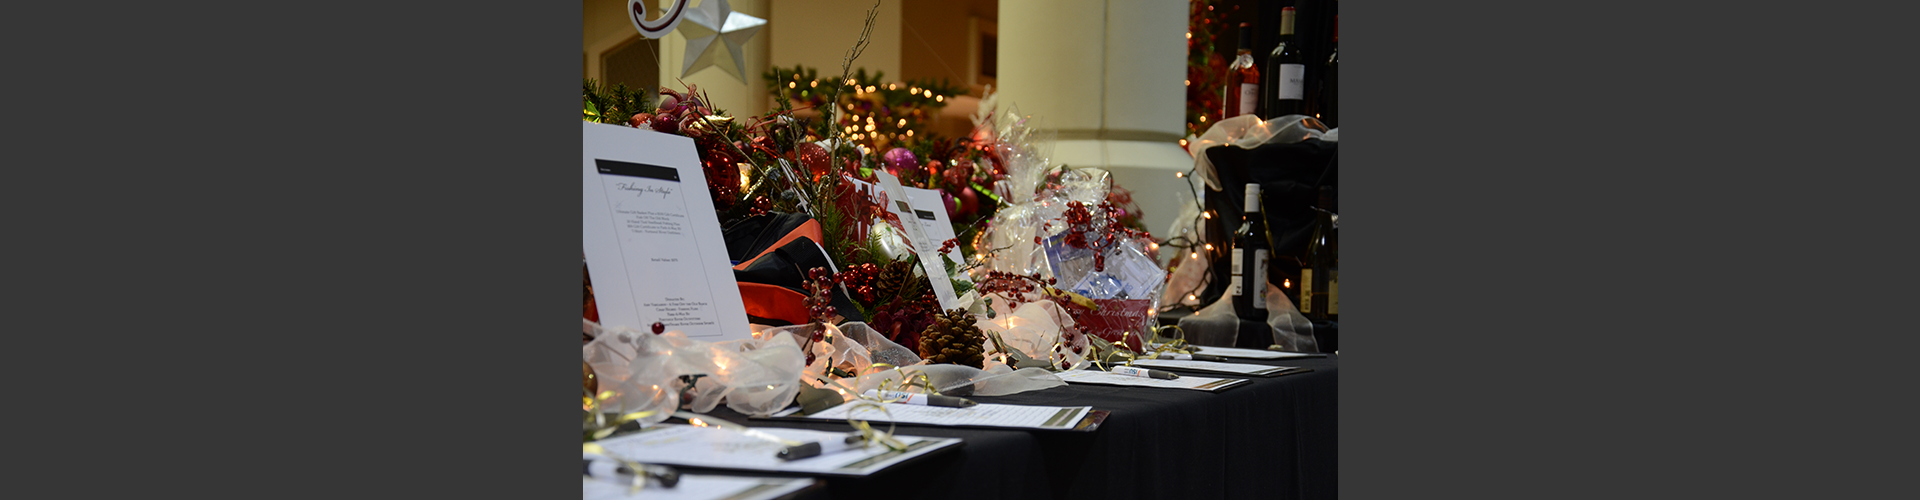 image of opening gala silent auction items at the Festival of Trees